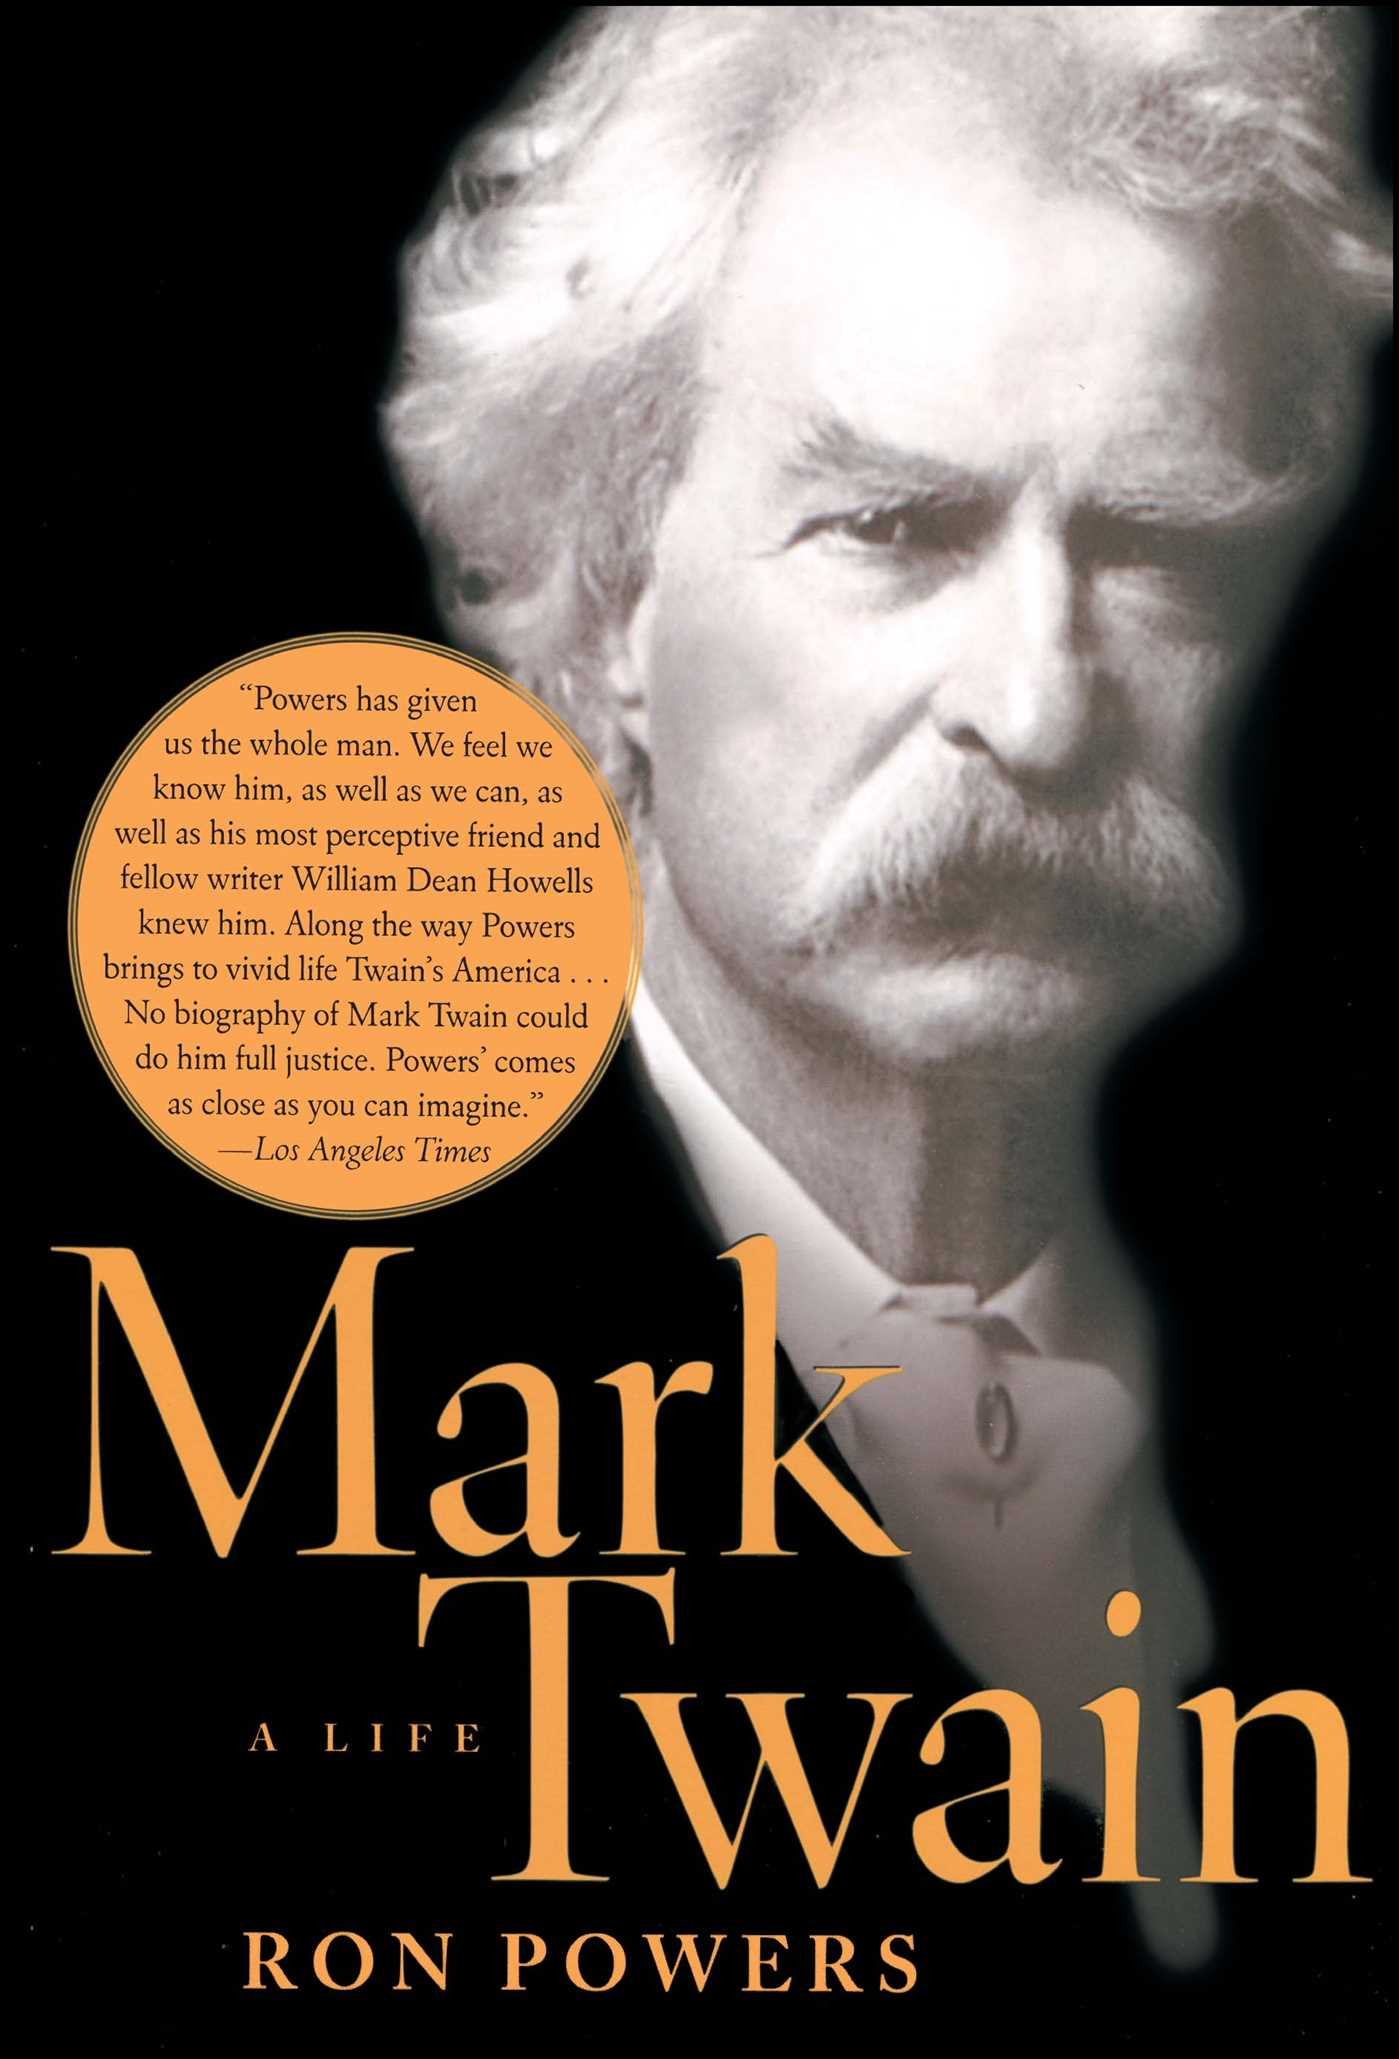 biography of mark twain The singular mark twain: a biography new york: doubleday, 2003 (isbn 0-385-47715-5) justin kaplan mr clemens and mark twain: a biography.